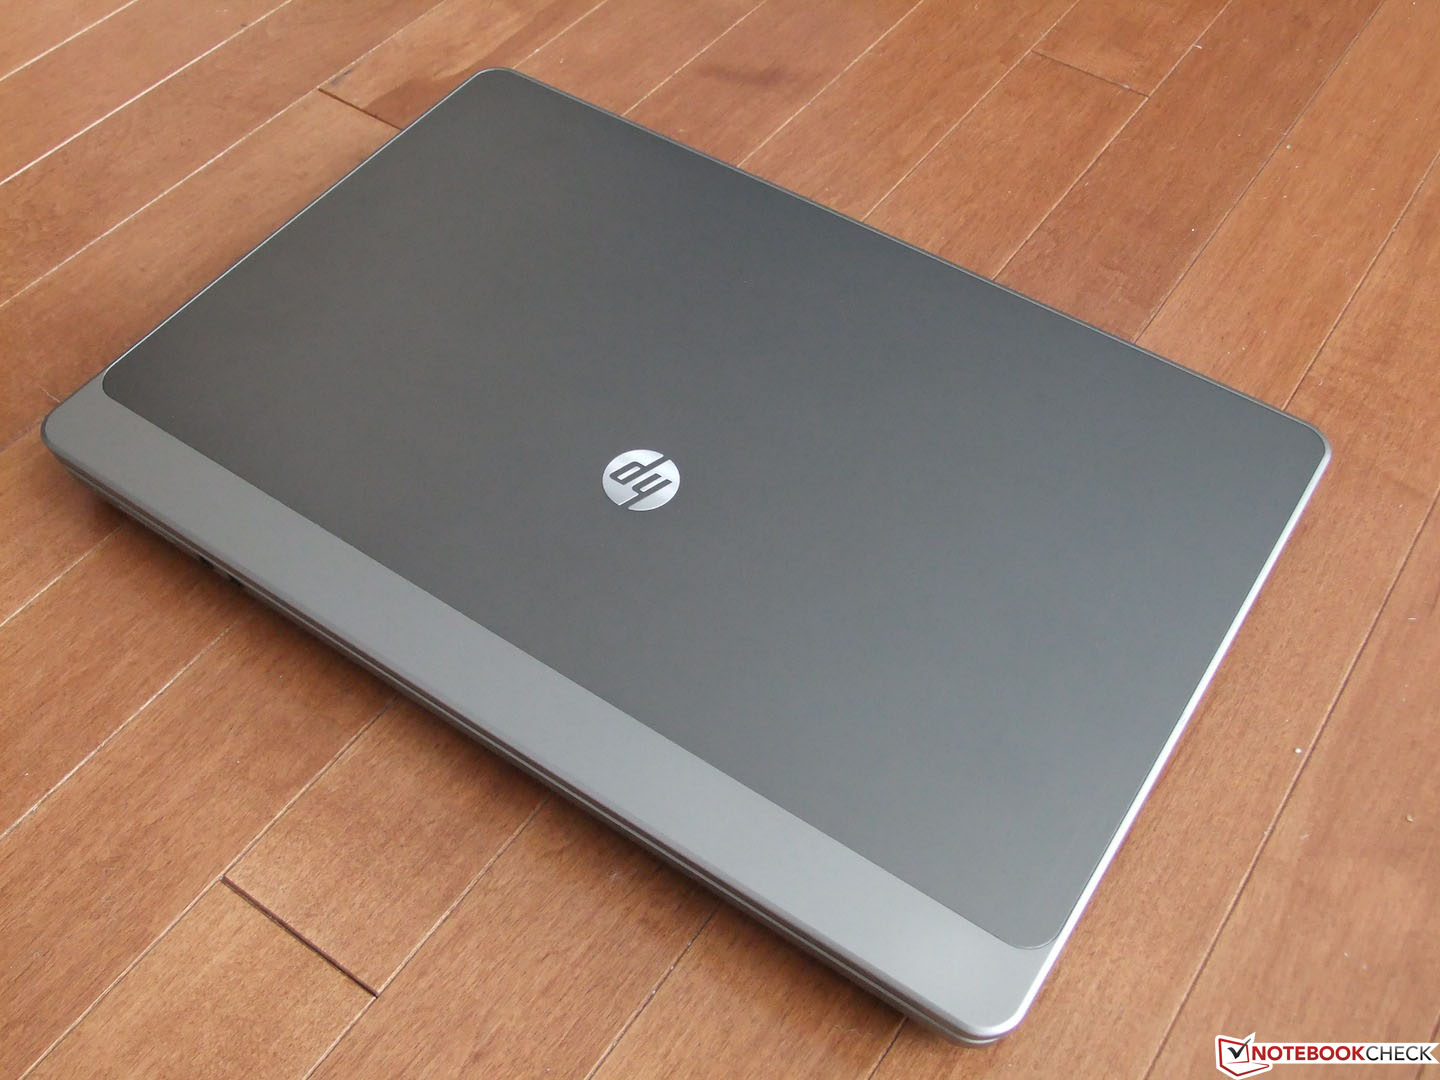 DRIVERS FOR HP PROBOOK 4430S USB 3.0